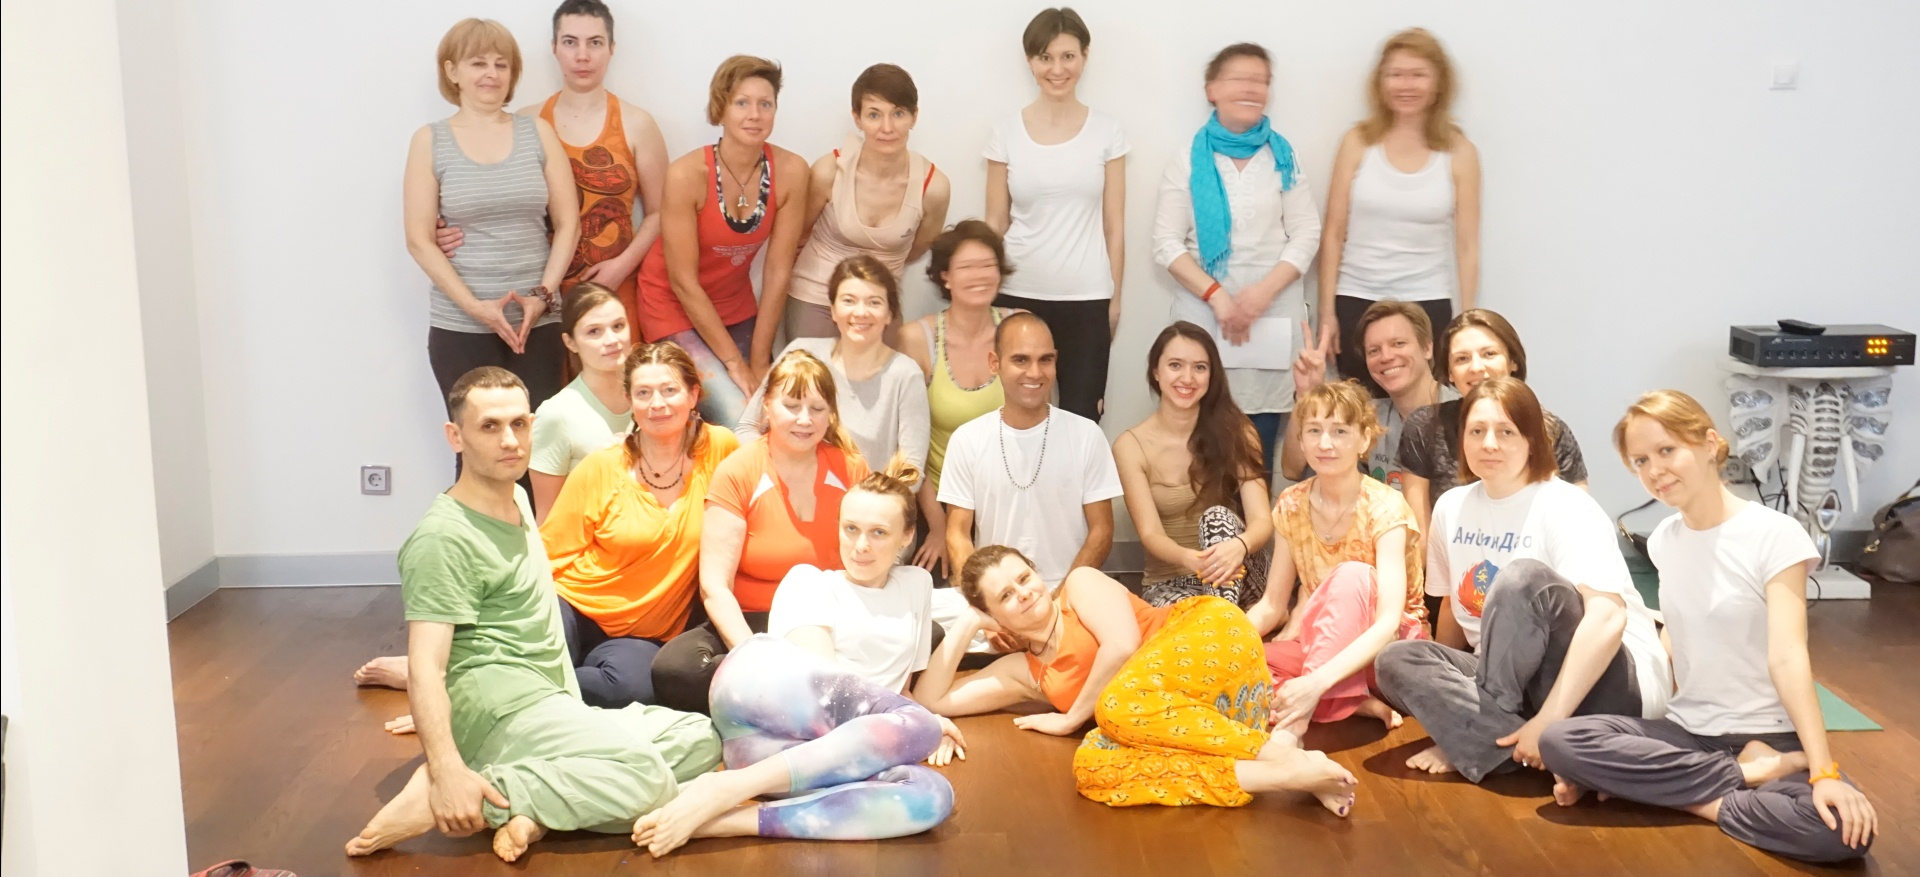 Yoga studio Guru Yoga School Rishikesh